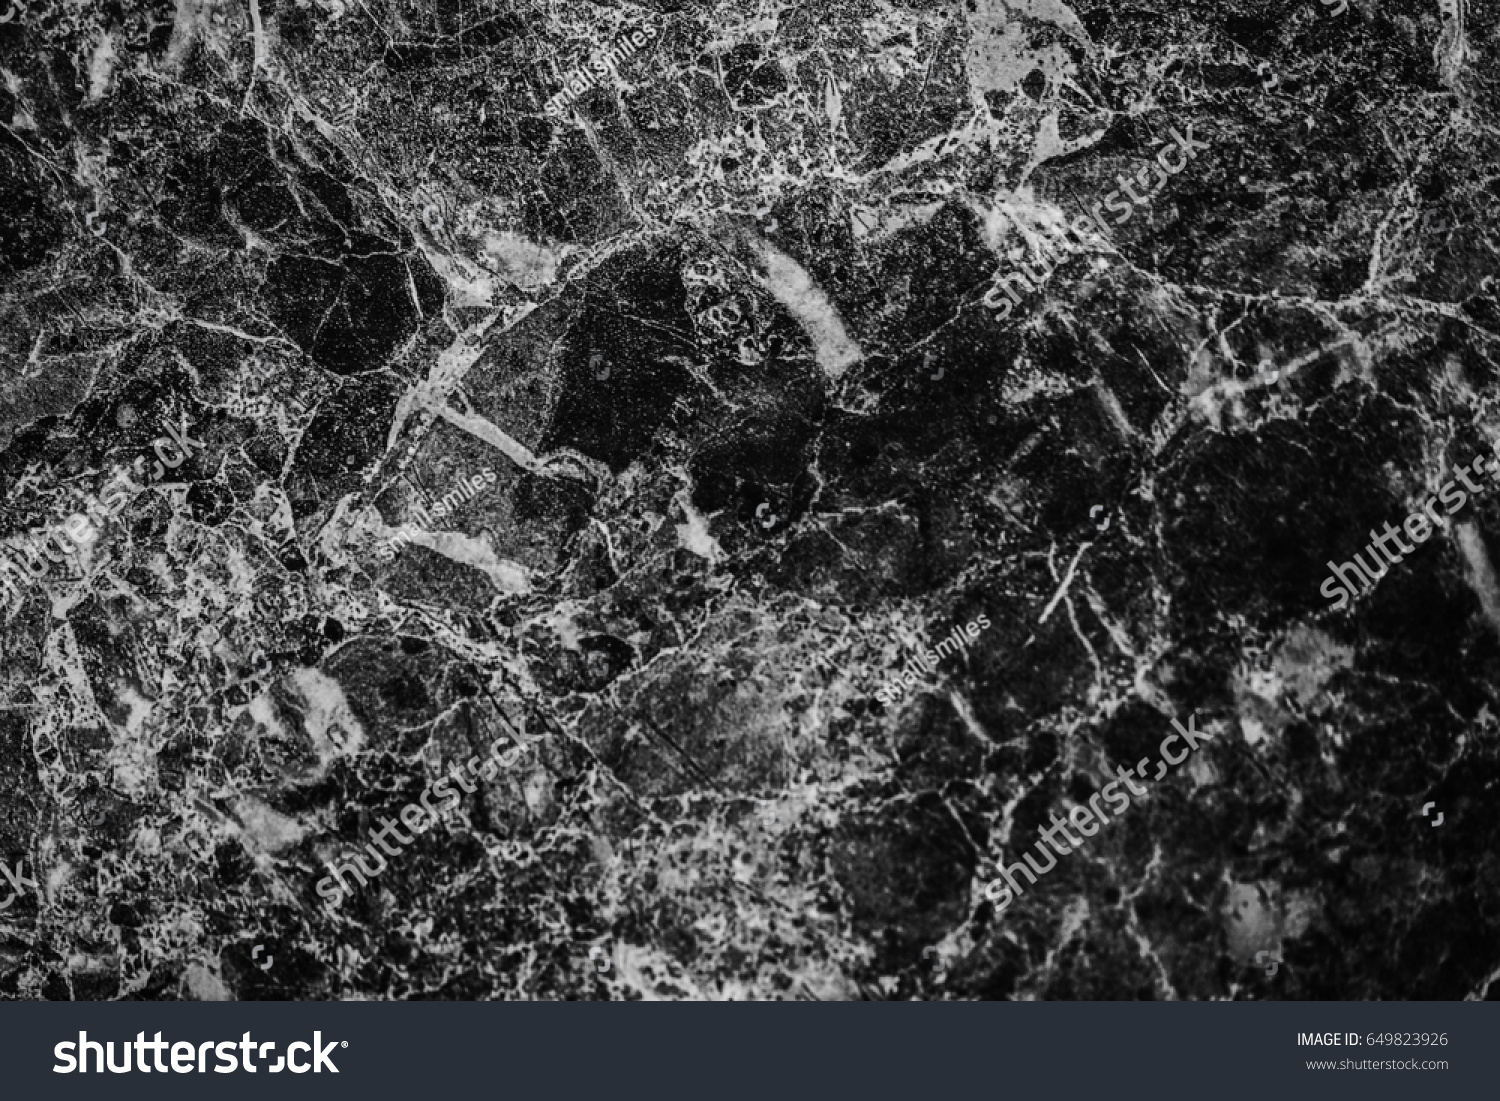 Best Wallpaper Marble Black - stock-photo-abstract-natural-marble-black-texture-background-for-interiors-wallpaper-design-and-wall-tile-649823926  Pictures_424016.jpg